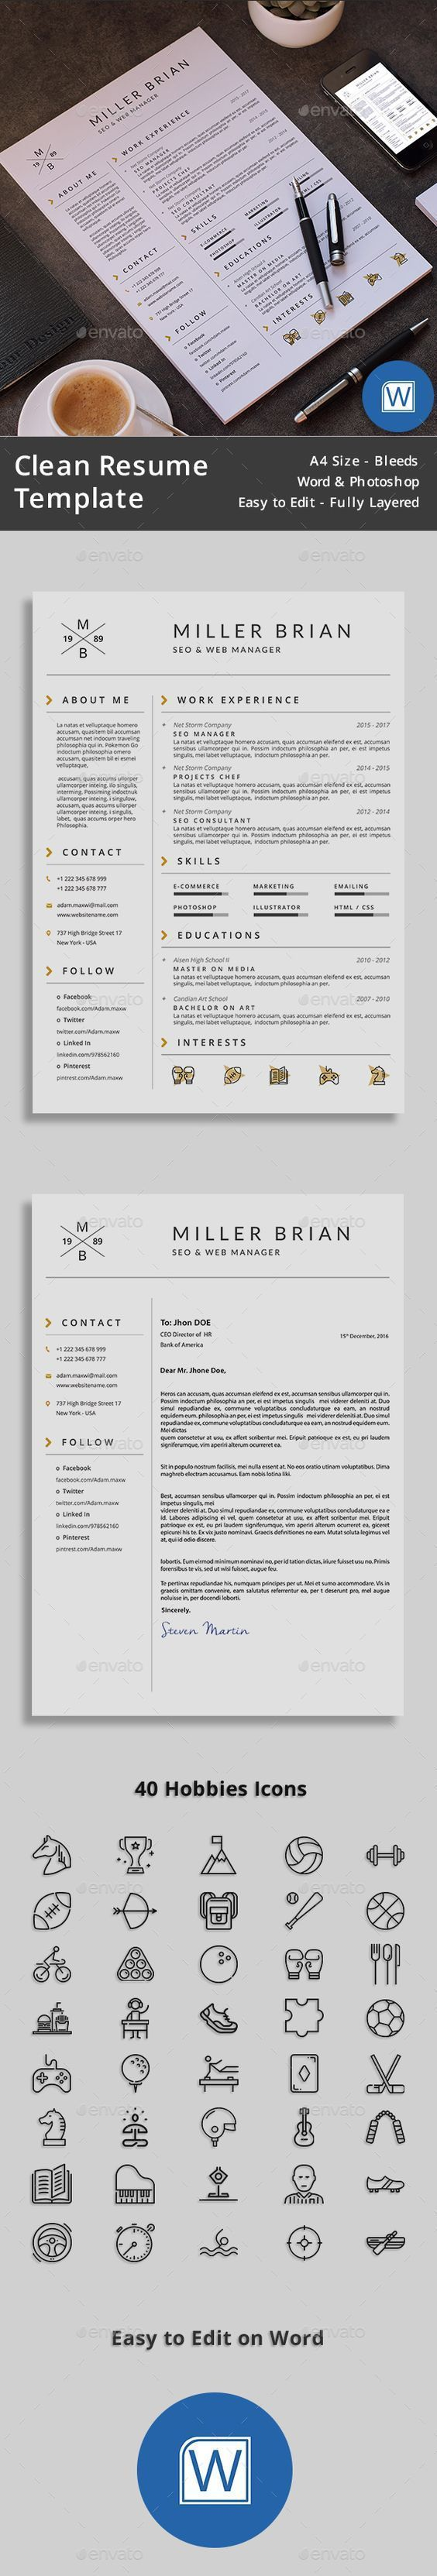 cover letter for sales manager position%0A Professional  u     Modern Resume Template for MS Word   CV Template for word    Resume template for word       Editable   Instant Digital Download